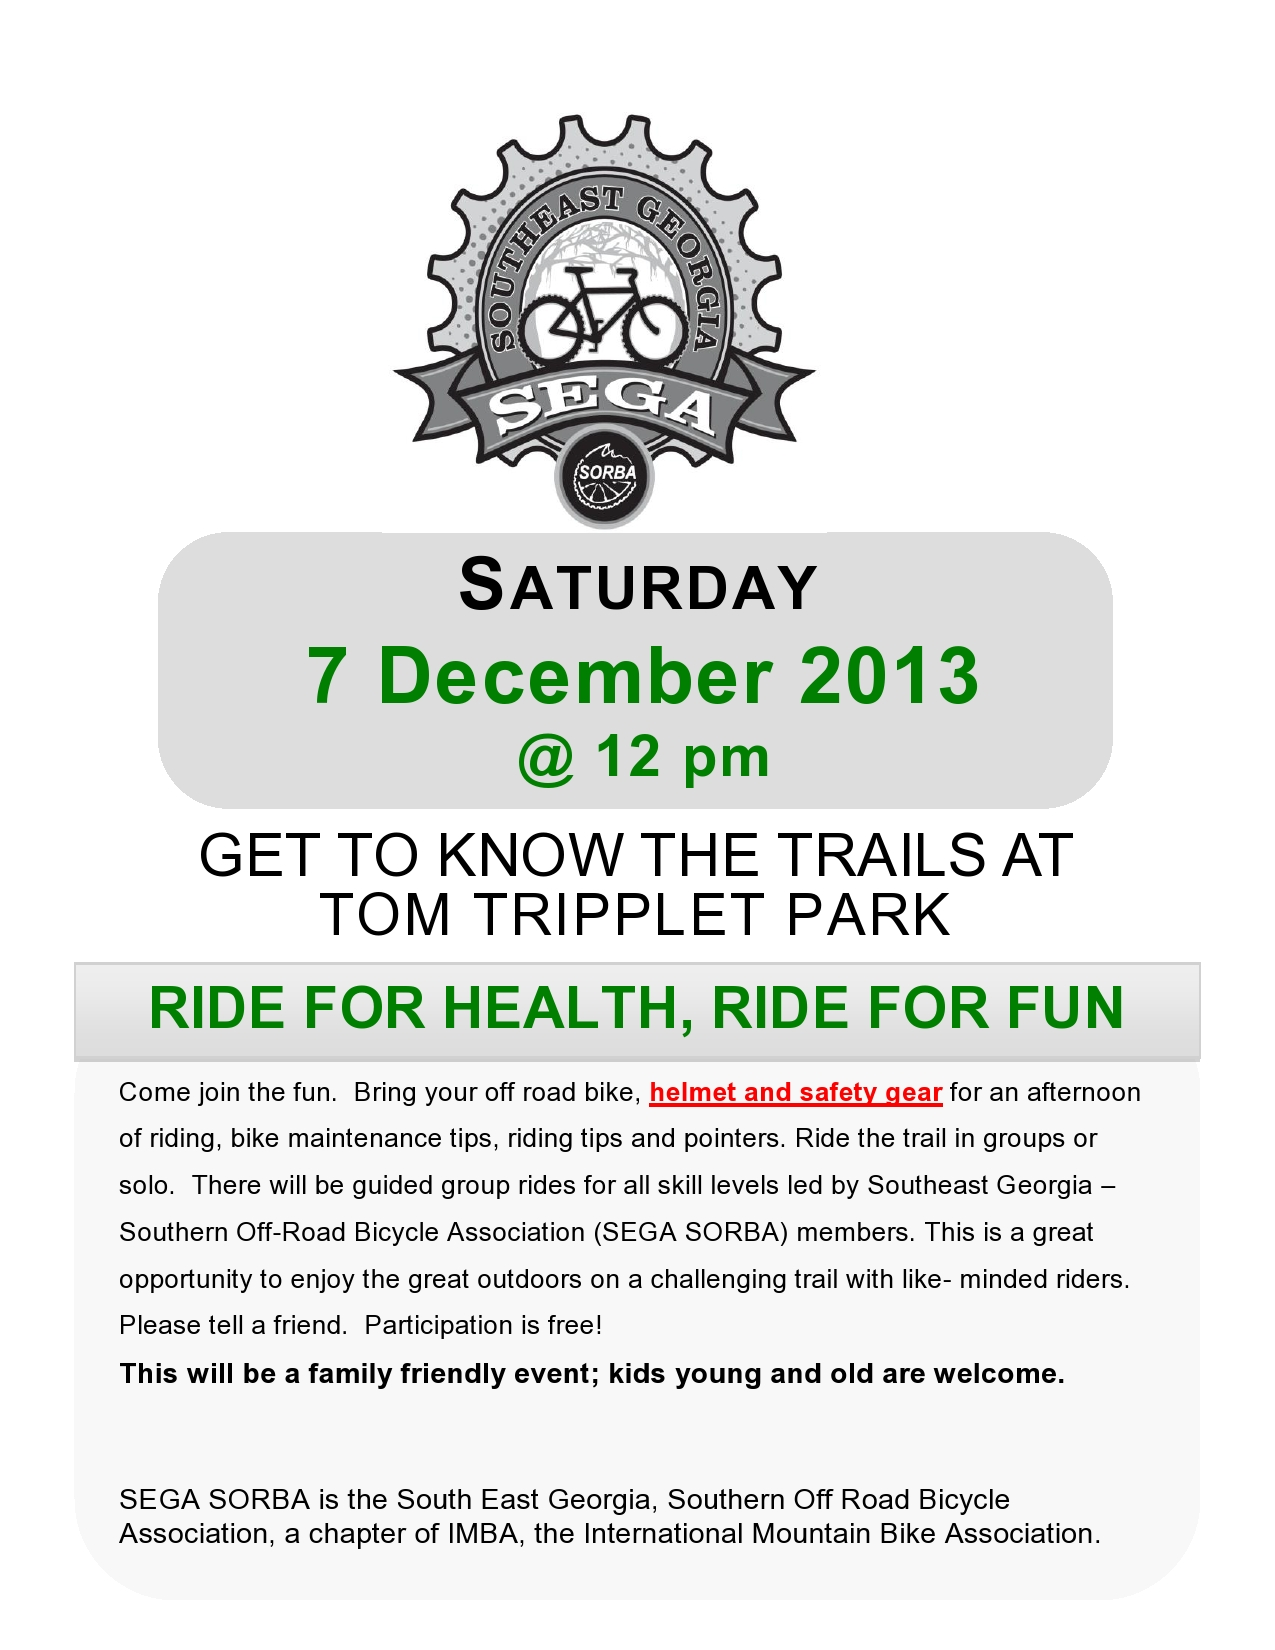 Free family bike ride Pooler 2013